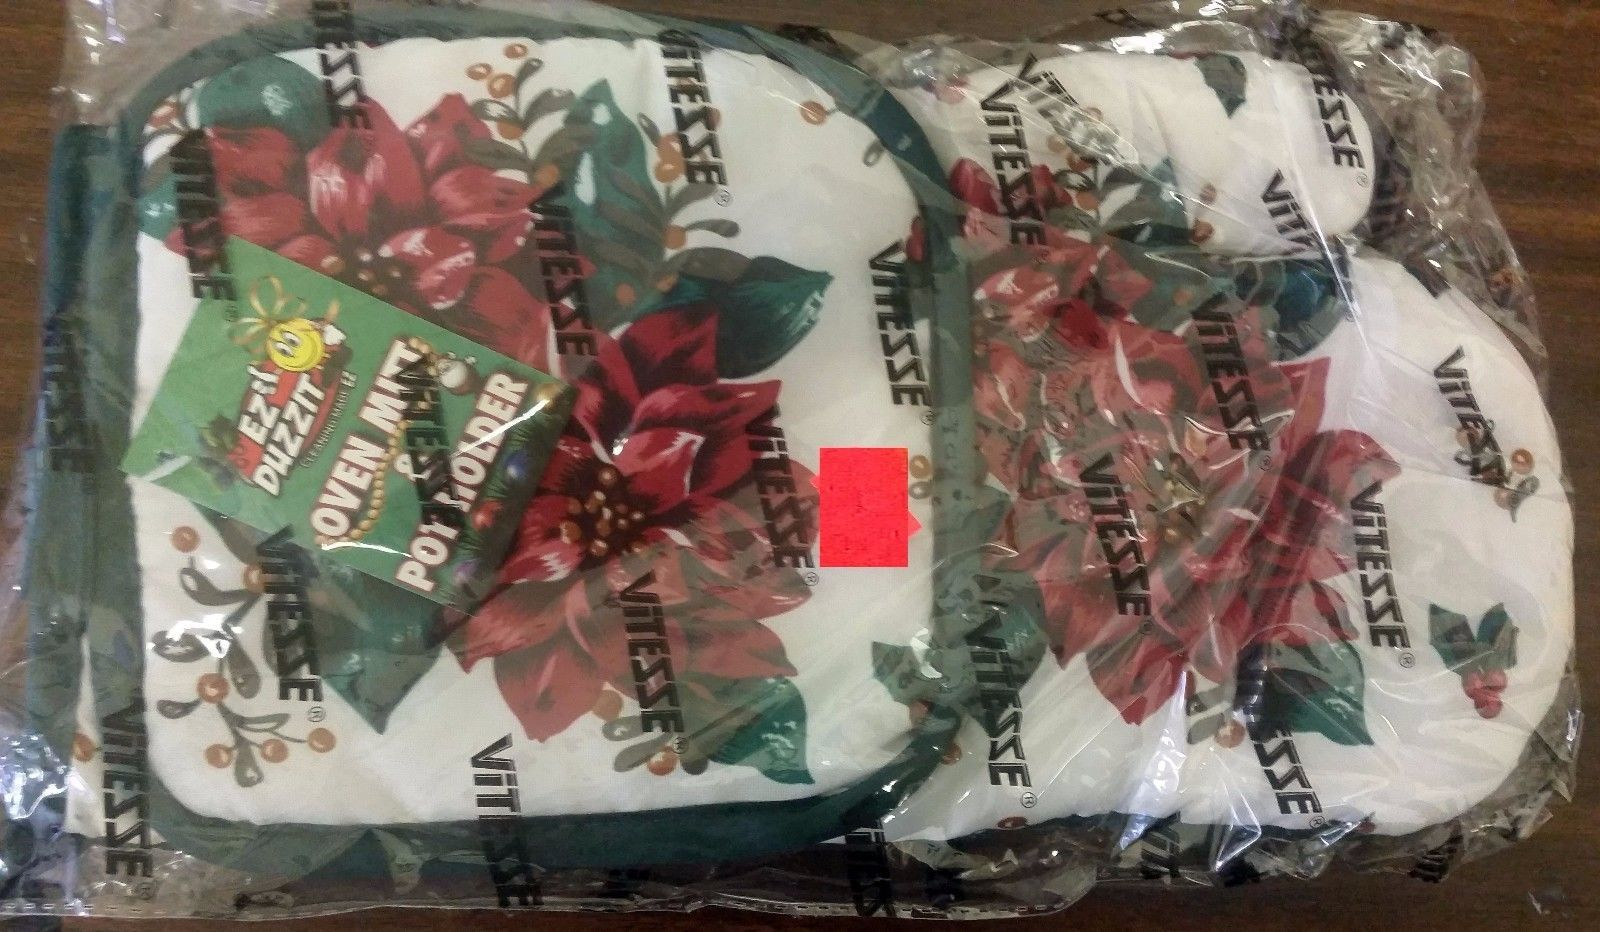 2 pc PRINTED KITCHEN SET: 1 Pot Holder & 1 Oven Mitt, FLOWERS by PRIDE